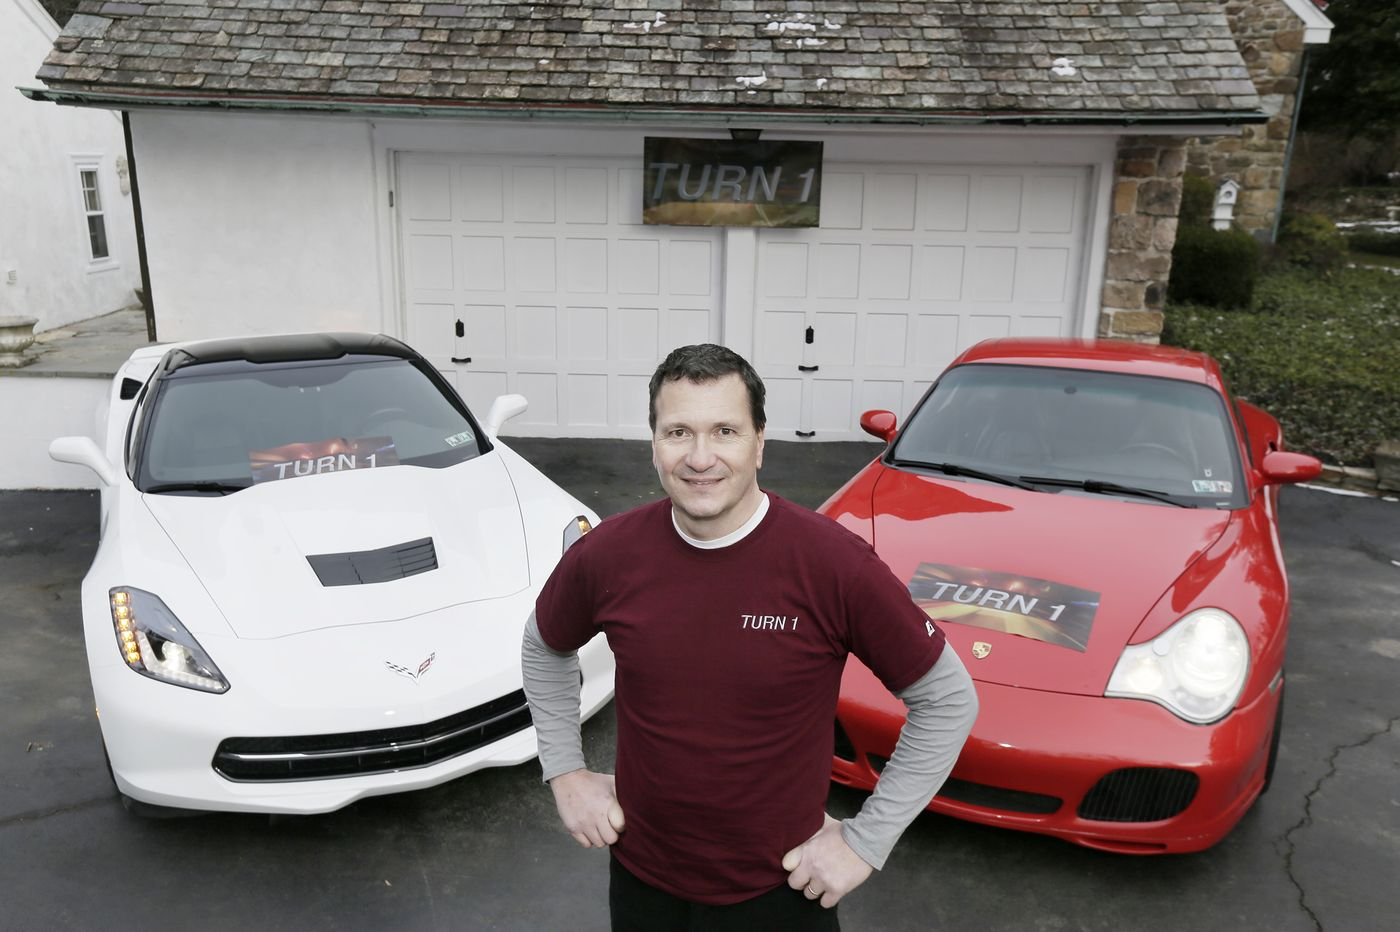 Youtube car show is born from Huntingdon family passion